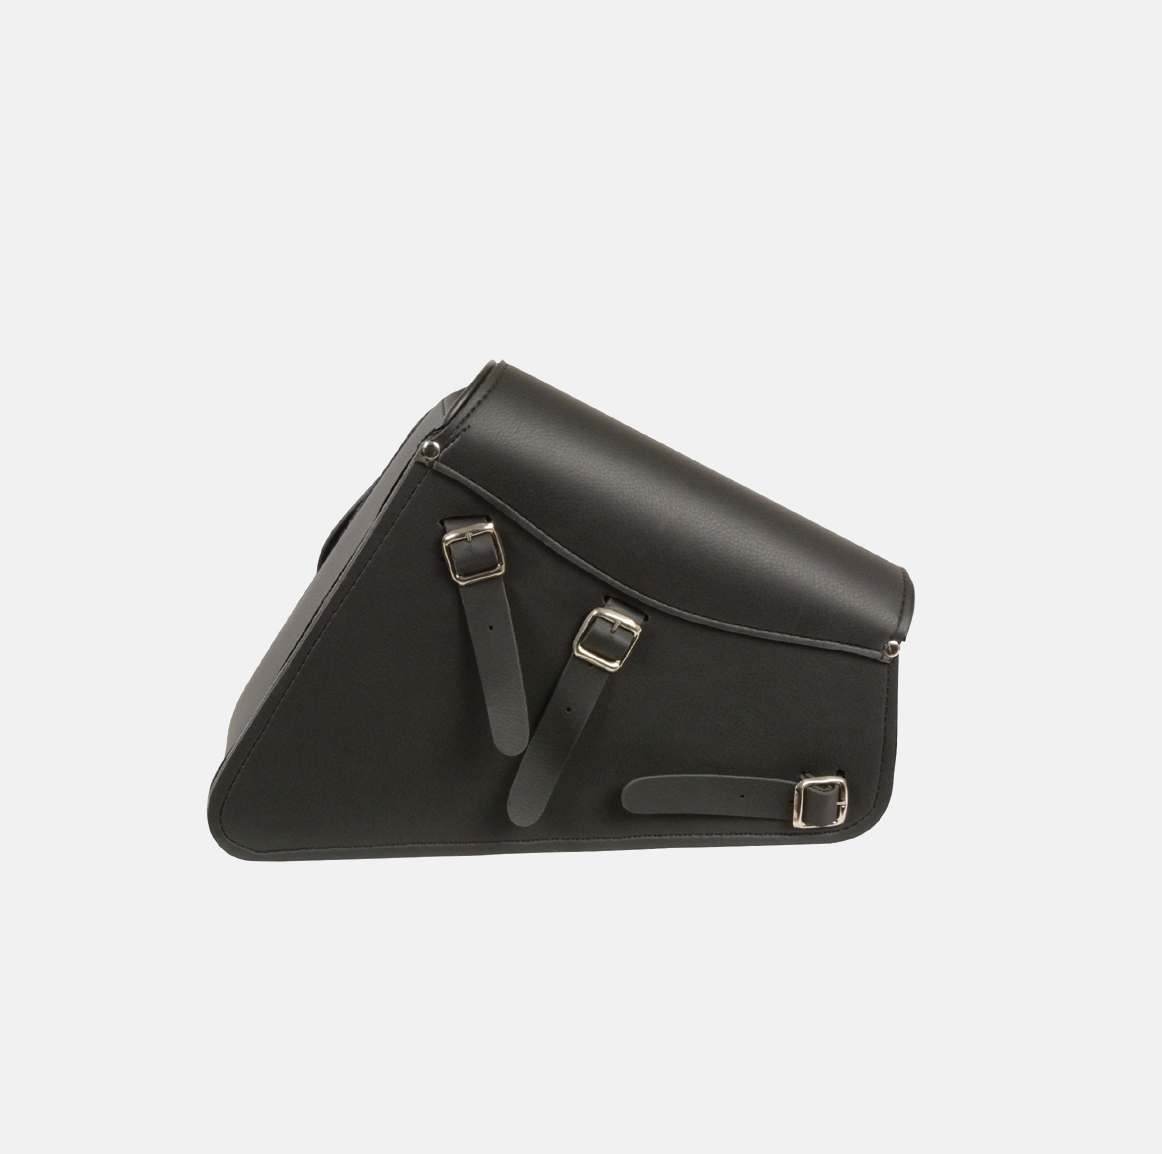 swing arm bag for sale